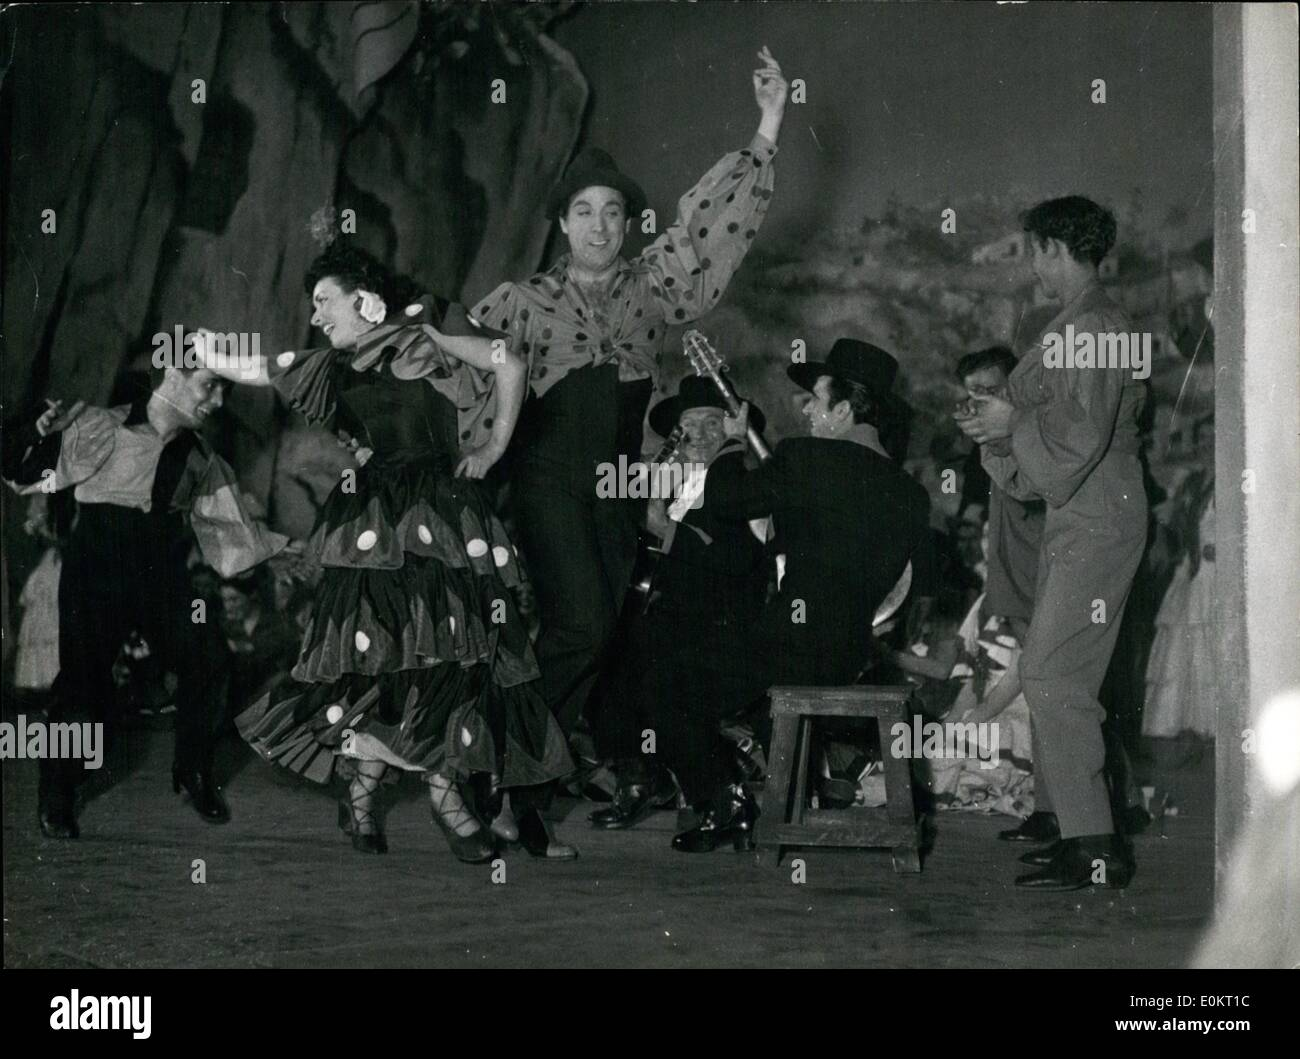 Dec. 12, 1949 - Luis Mariano in Belle De Cadix new version. The famous French crooner Luis Mariano stars in the new version of the well-known musical comedy La Belle De Cadix . He is seen here with his partner Miralda performing a Spanish dance. Dec. 18/49 - Stock Image